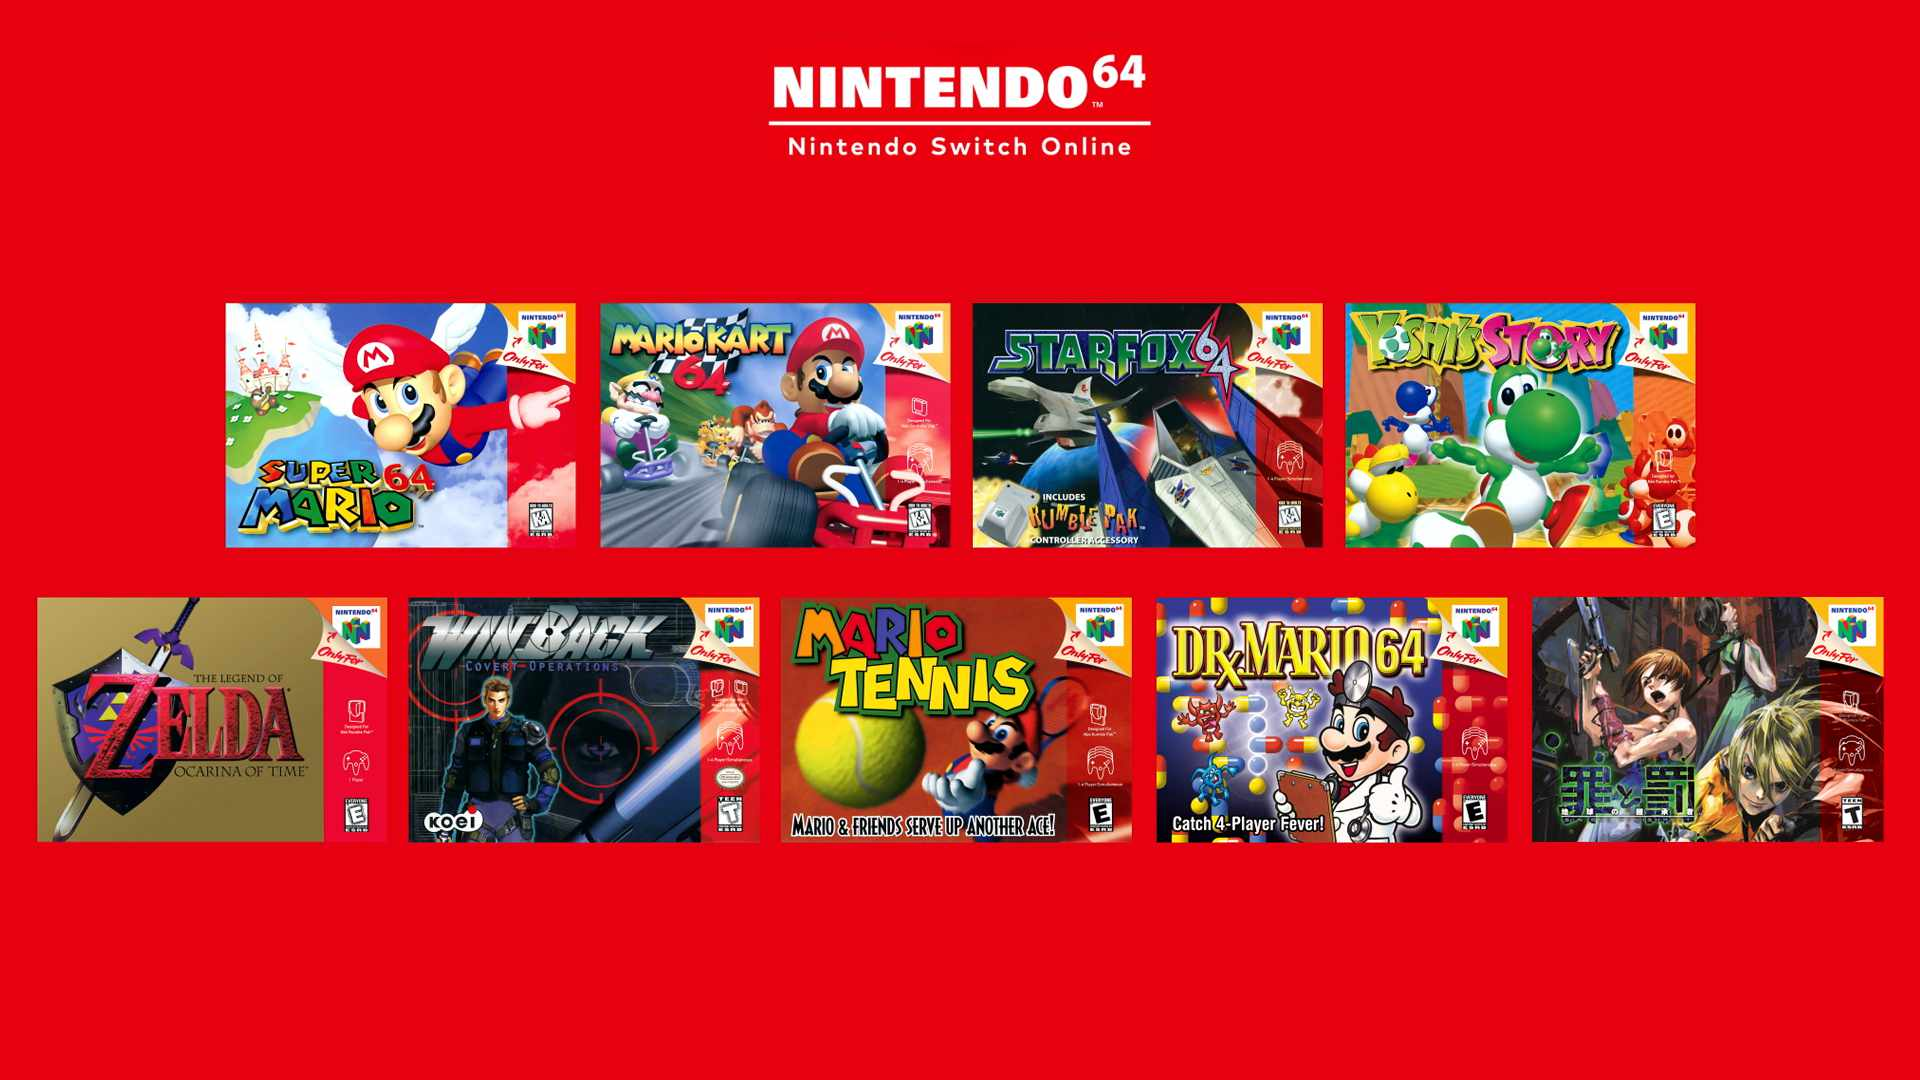 Switch Online Nintendo 64 library